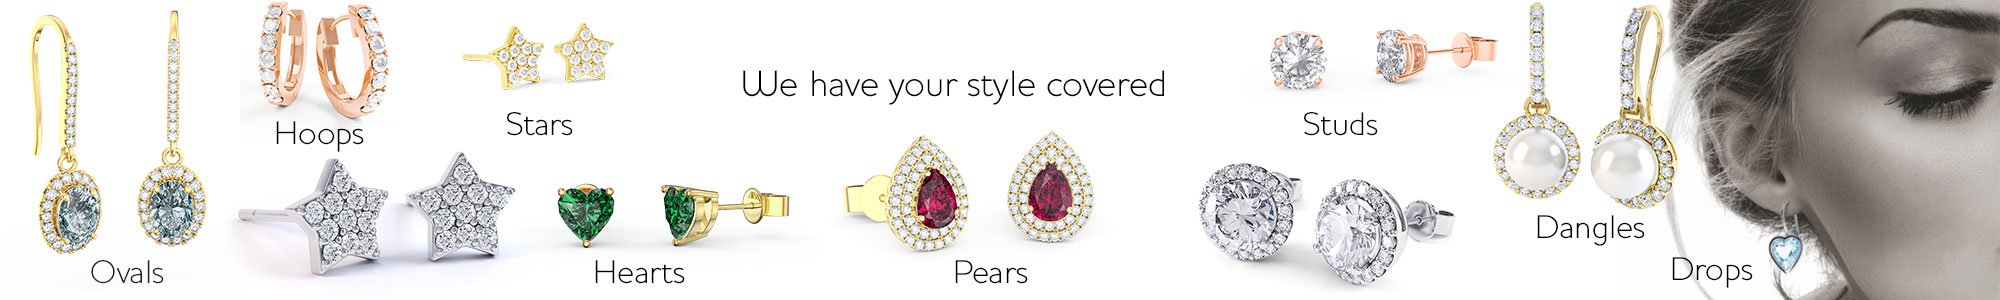 Shop Earrings by Jian London. Stunning gifts for your Bridesmaids. Free UK Delivery